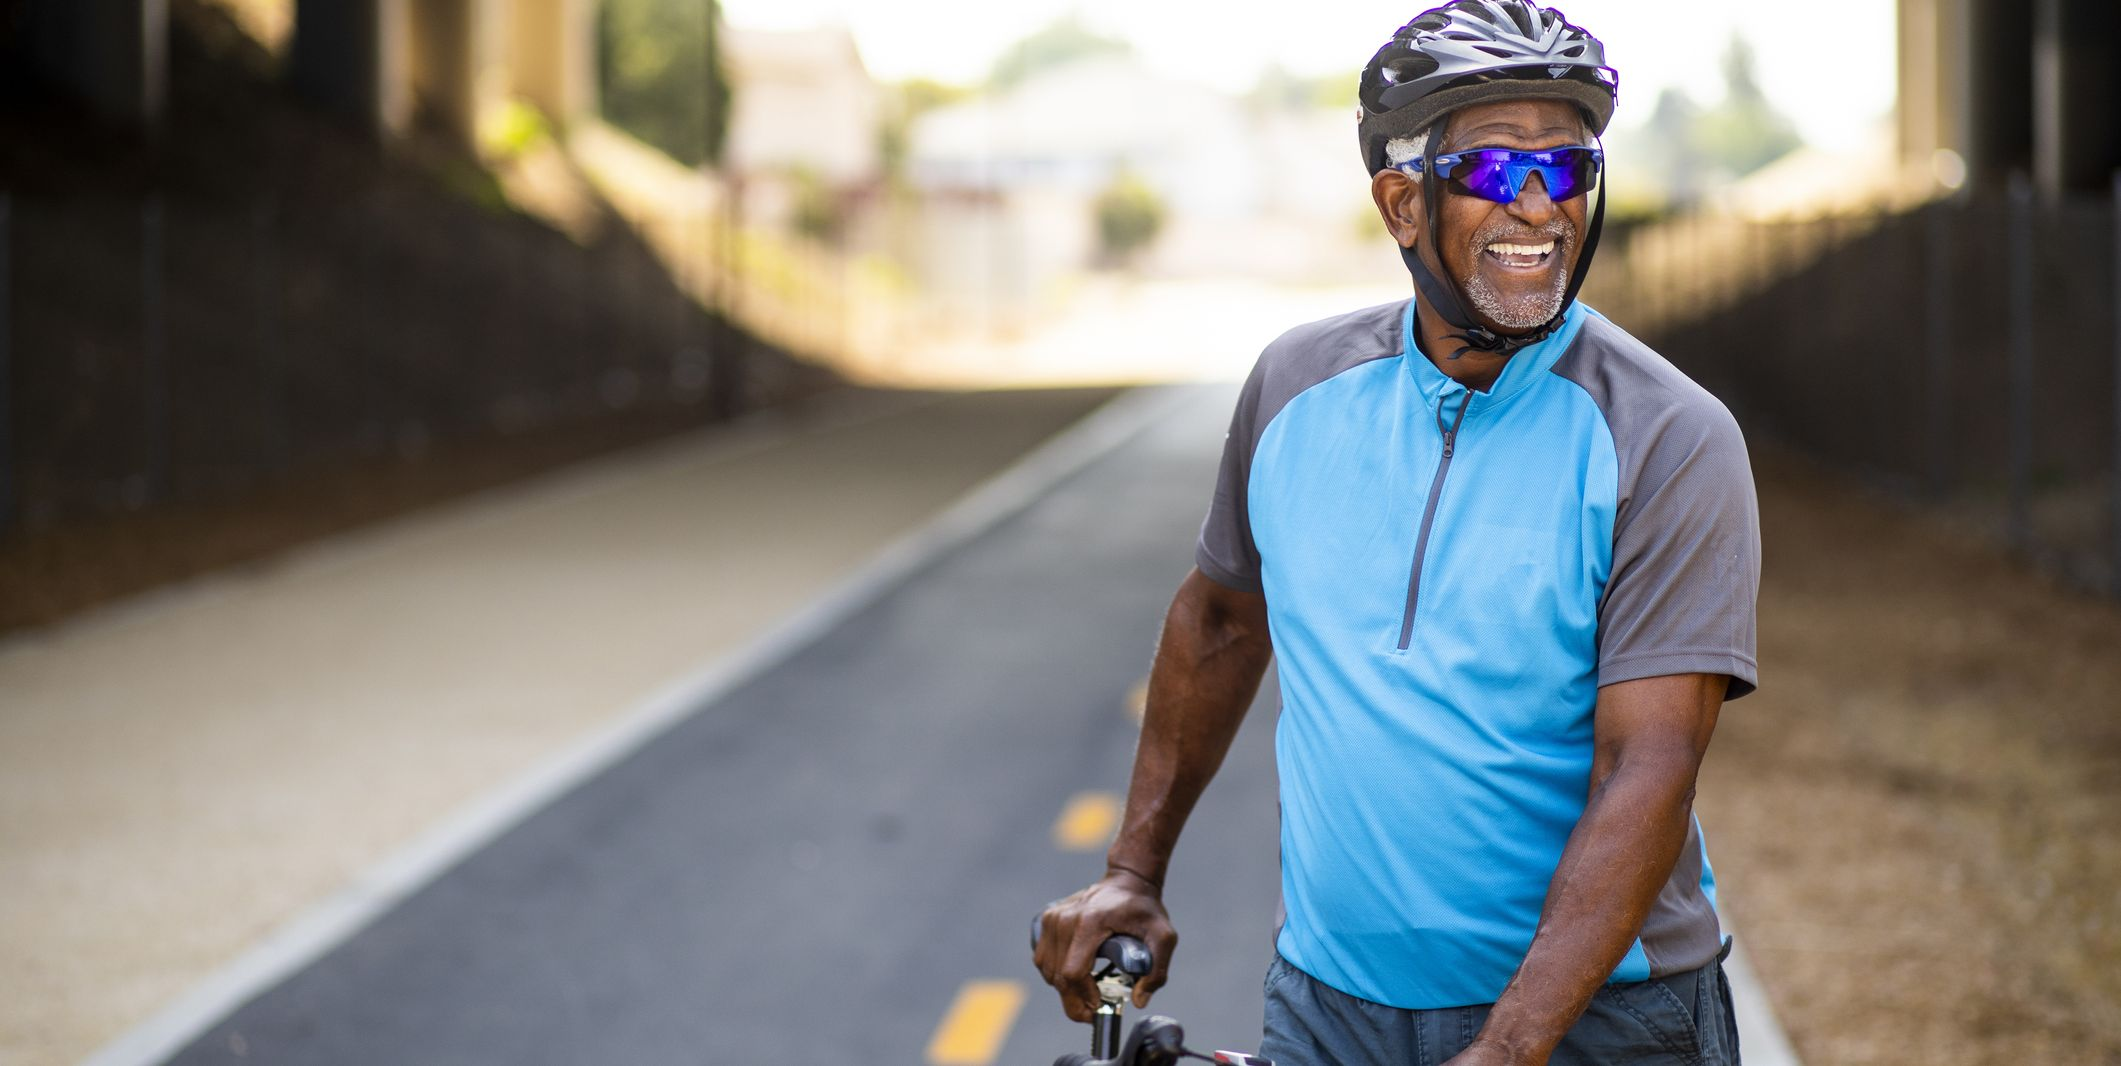 Portrait of a senior black male cyclist